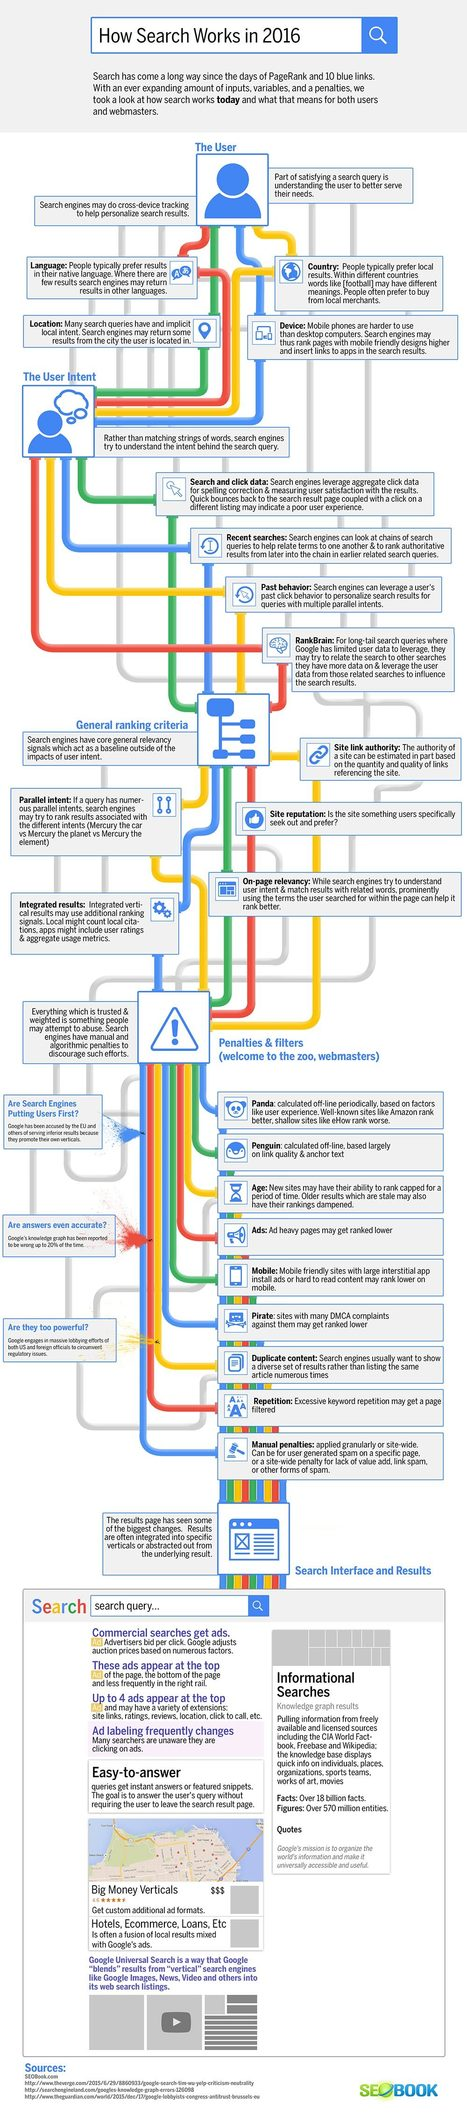 Infographie : Comment fonctionne Google ? | Education-andrah | Scoop.it